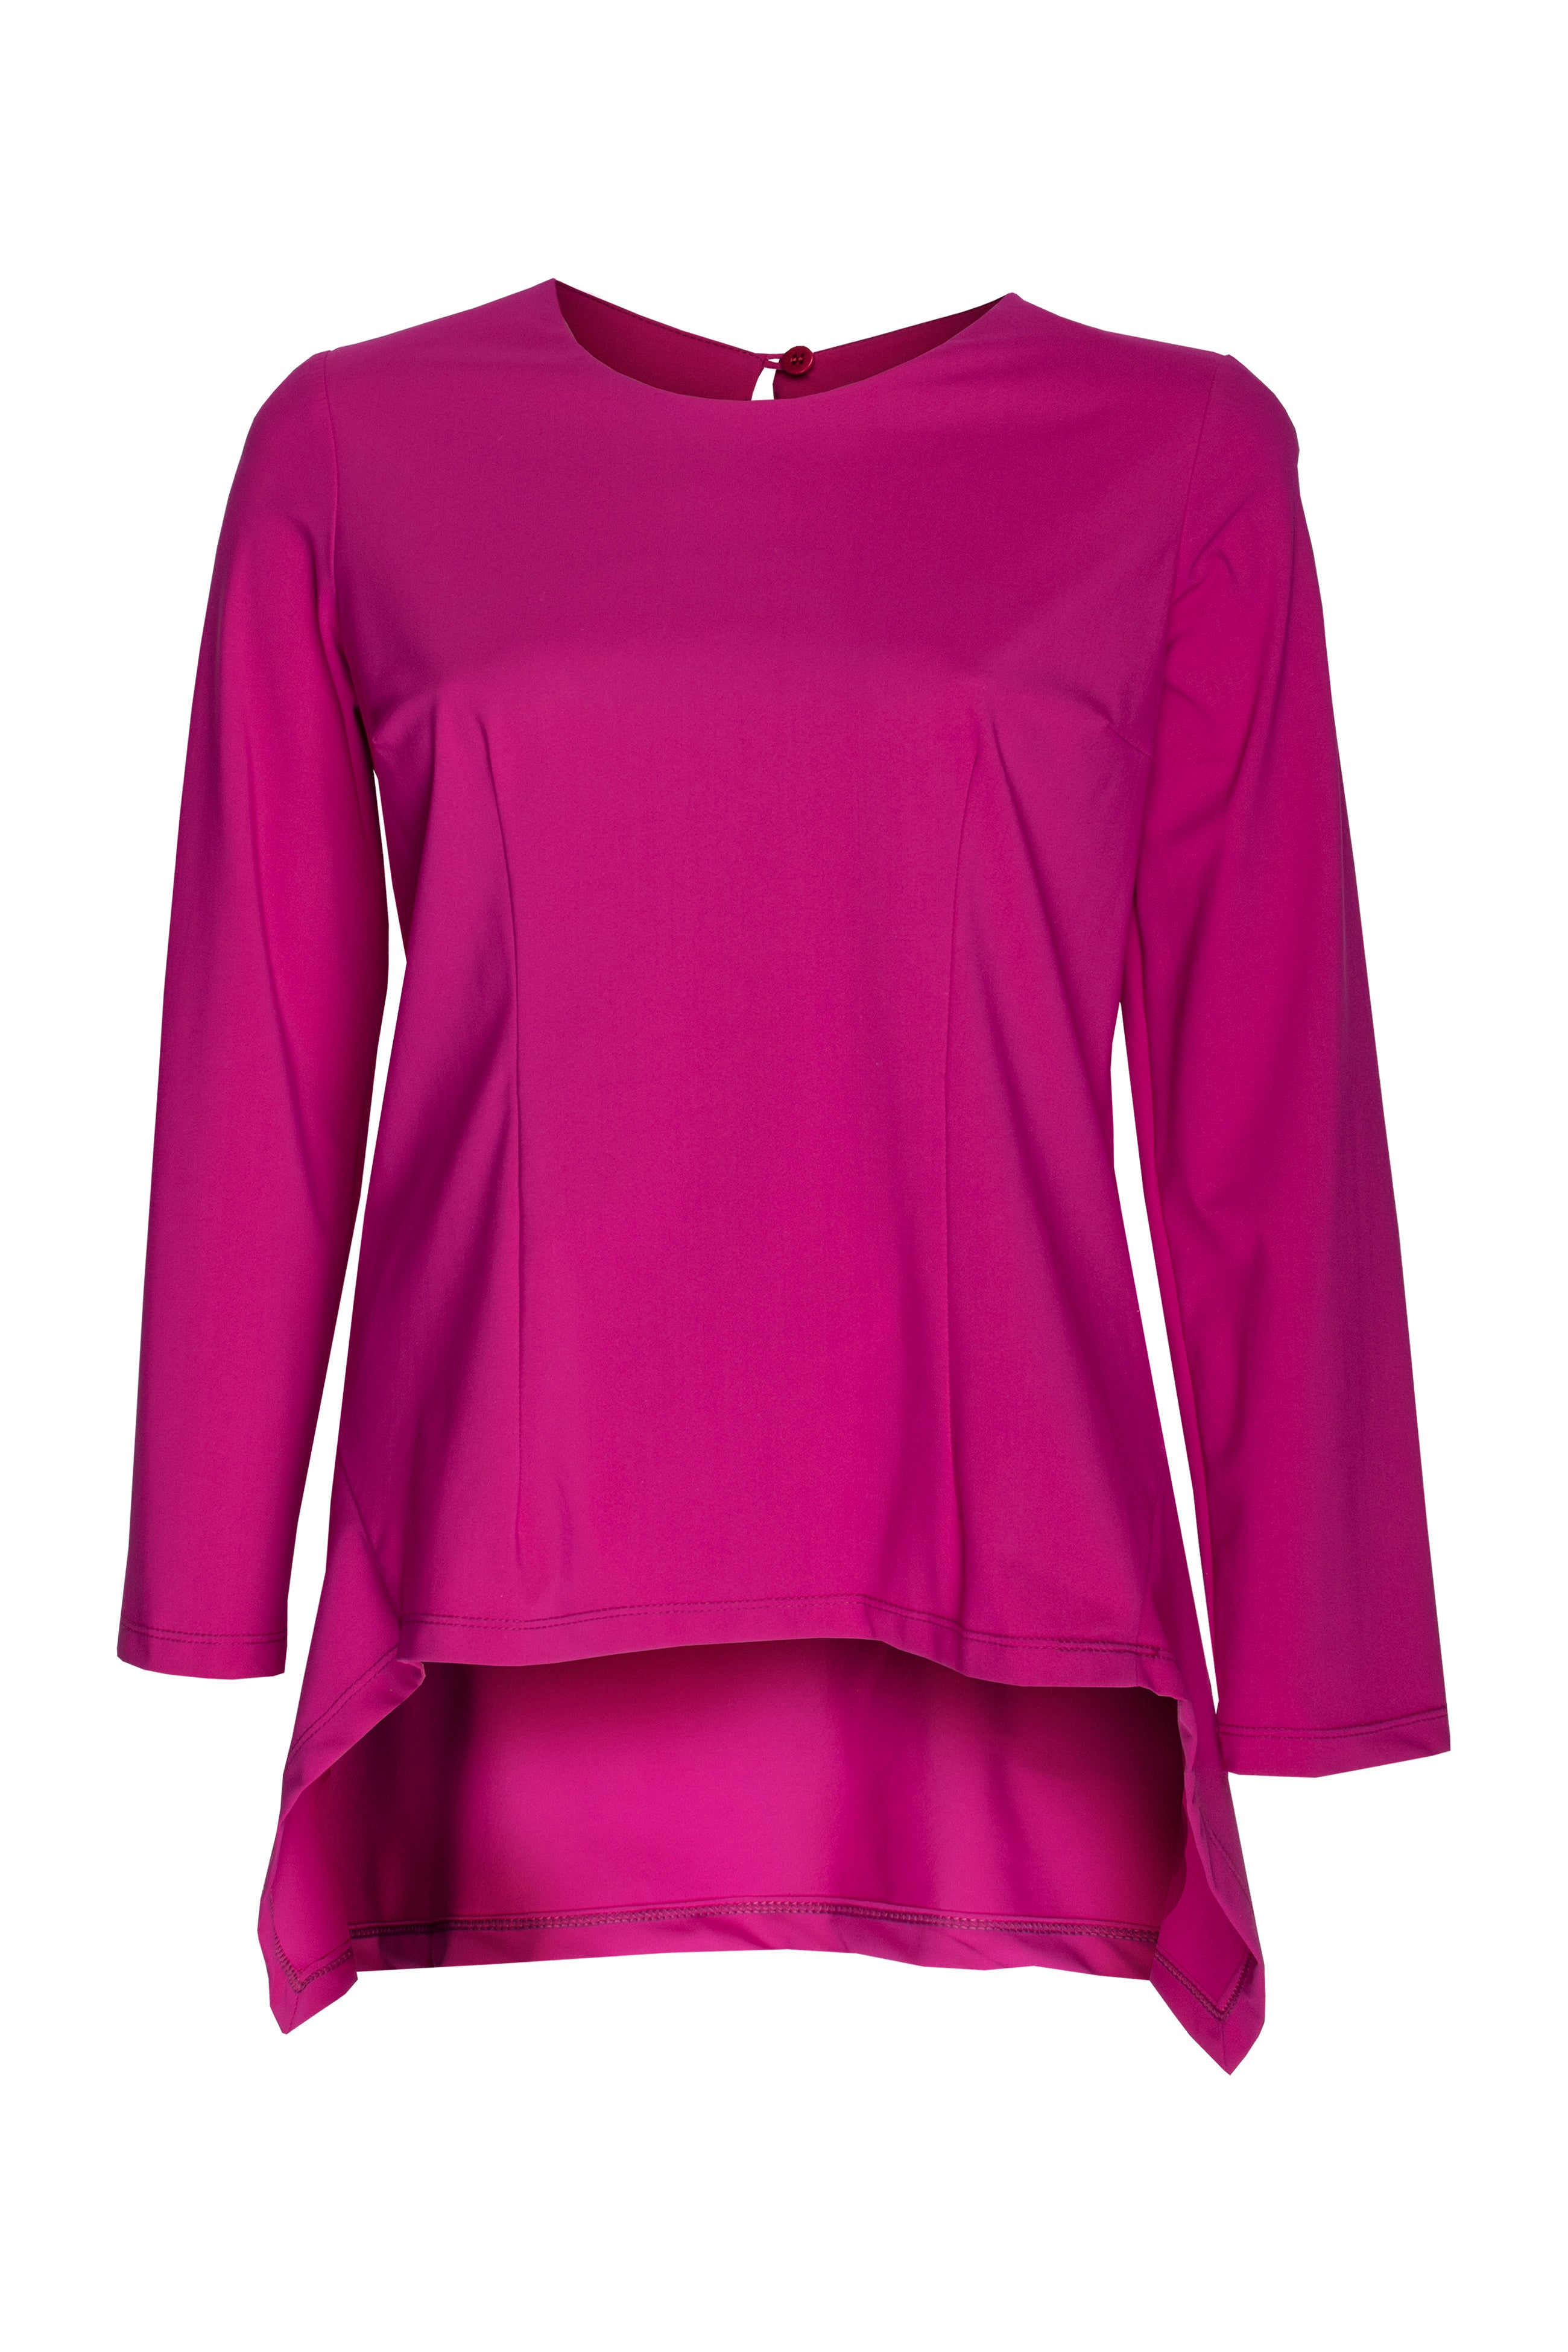 Cerise Jersey Long Sleeve Angle Top 8227